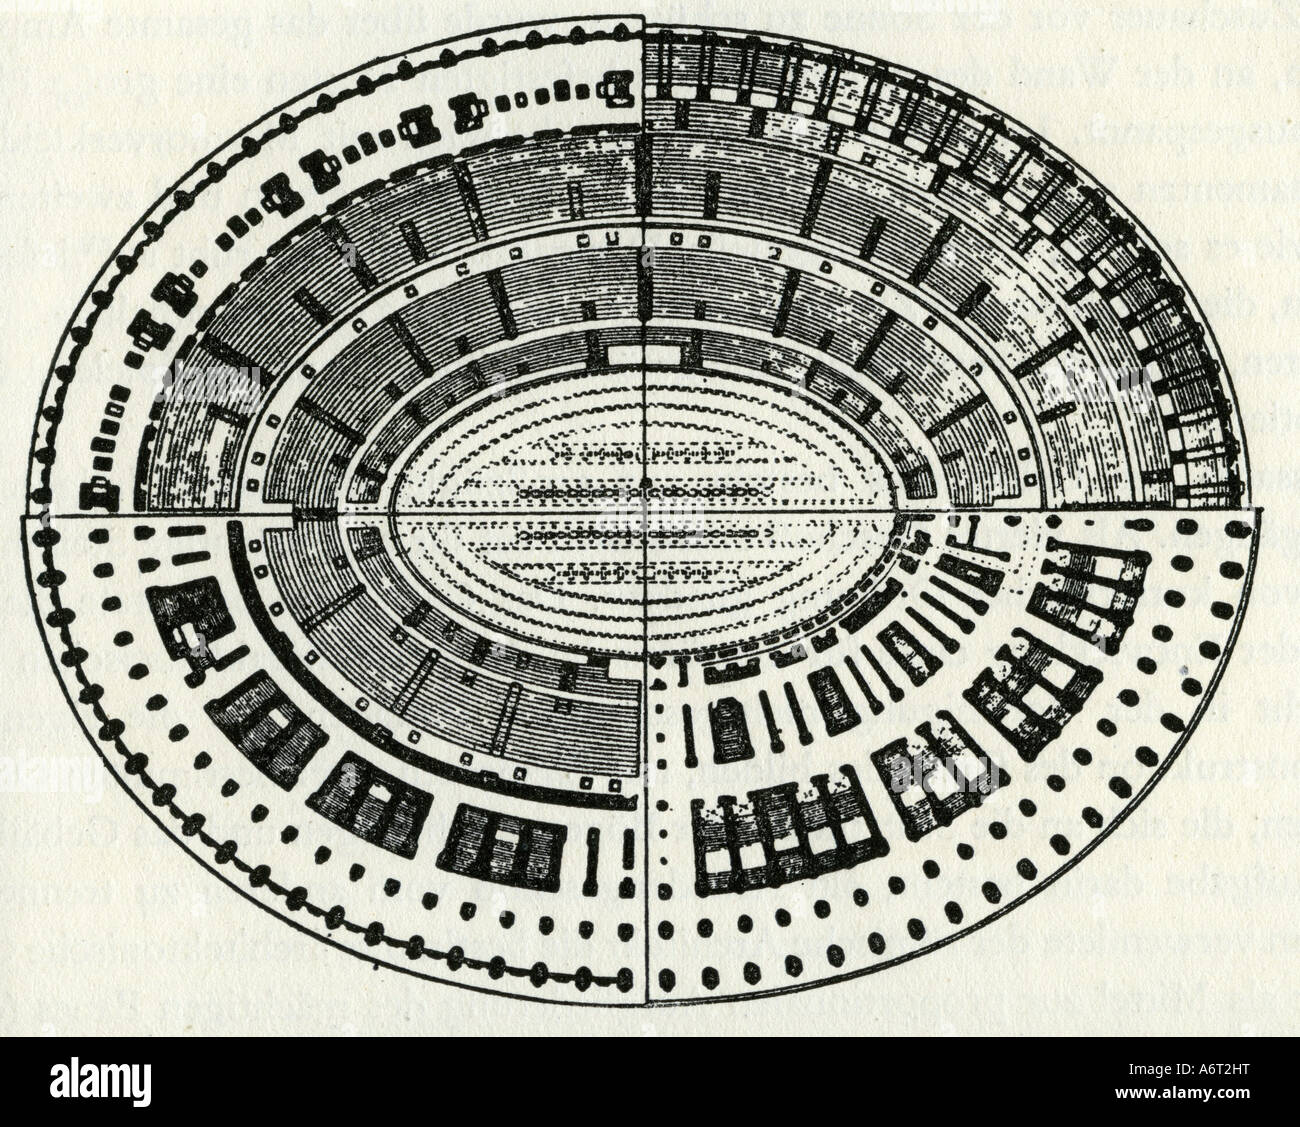 Geography Travel Italy Rome Colosseum Floor Plan Reconstruction 19th Century Drawing Architecture Ancient World Flavian Amphitheatre Coliseum Historic Historical Europe Ancient World Stock Photo Alamy